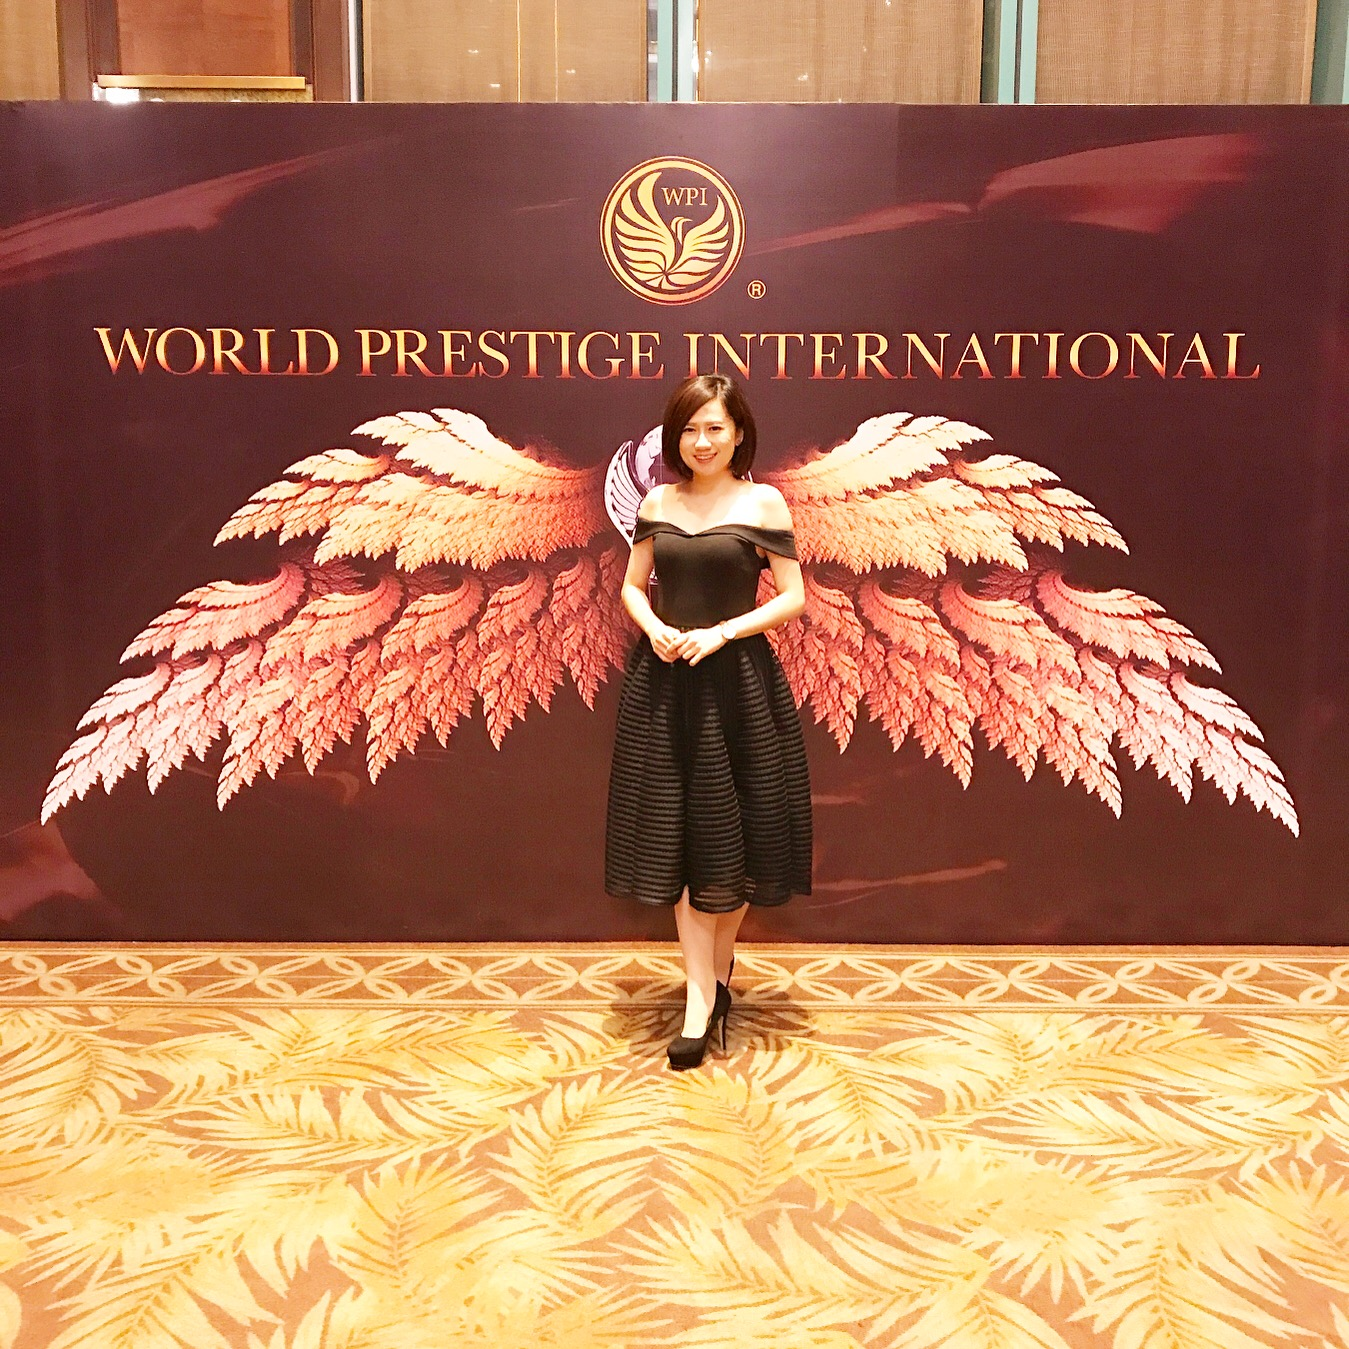 [Event] Miss World Prestige International Pageant 2017 + Gala Dinner @ Sunway Resort Hotel Grand Ballroom